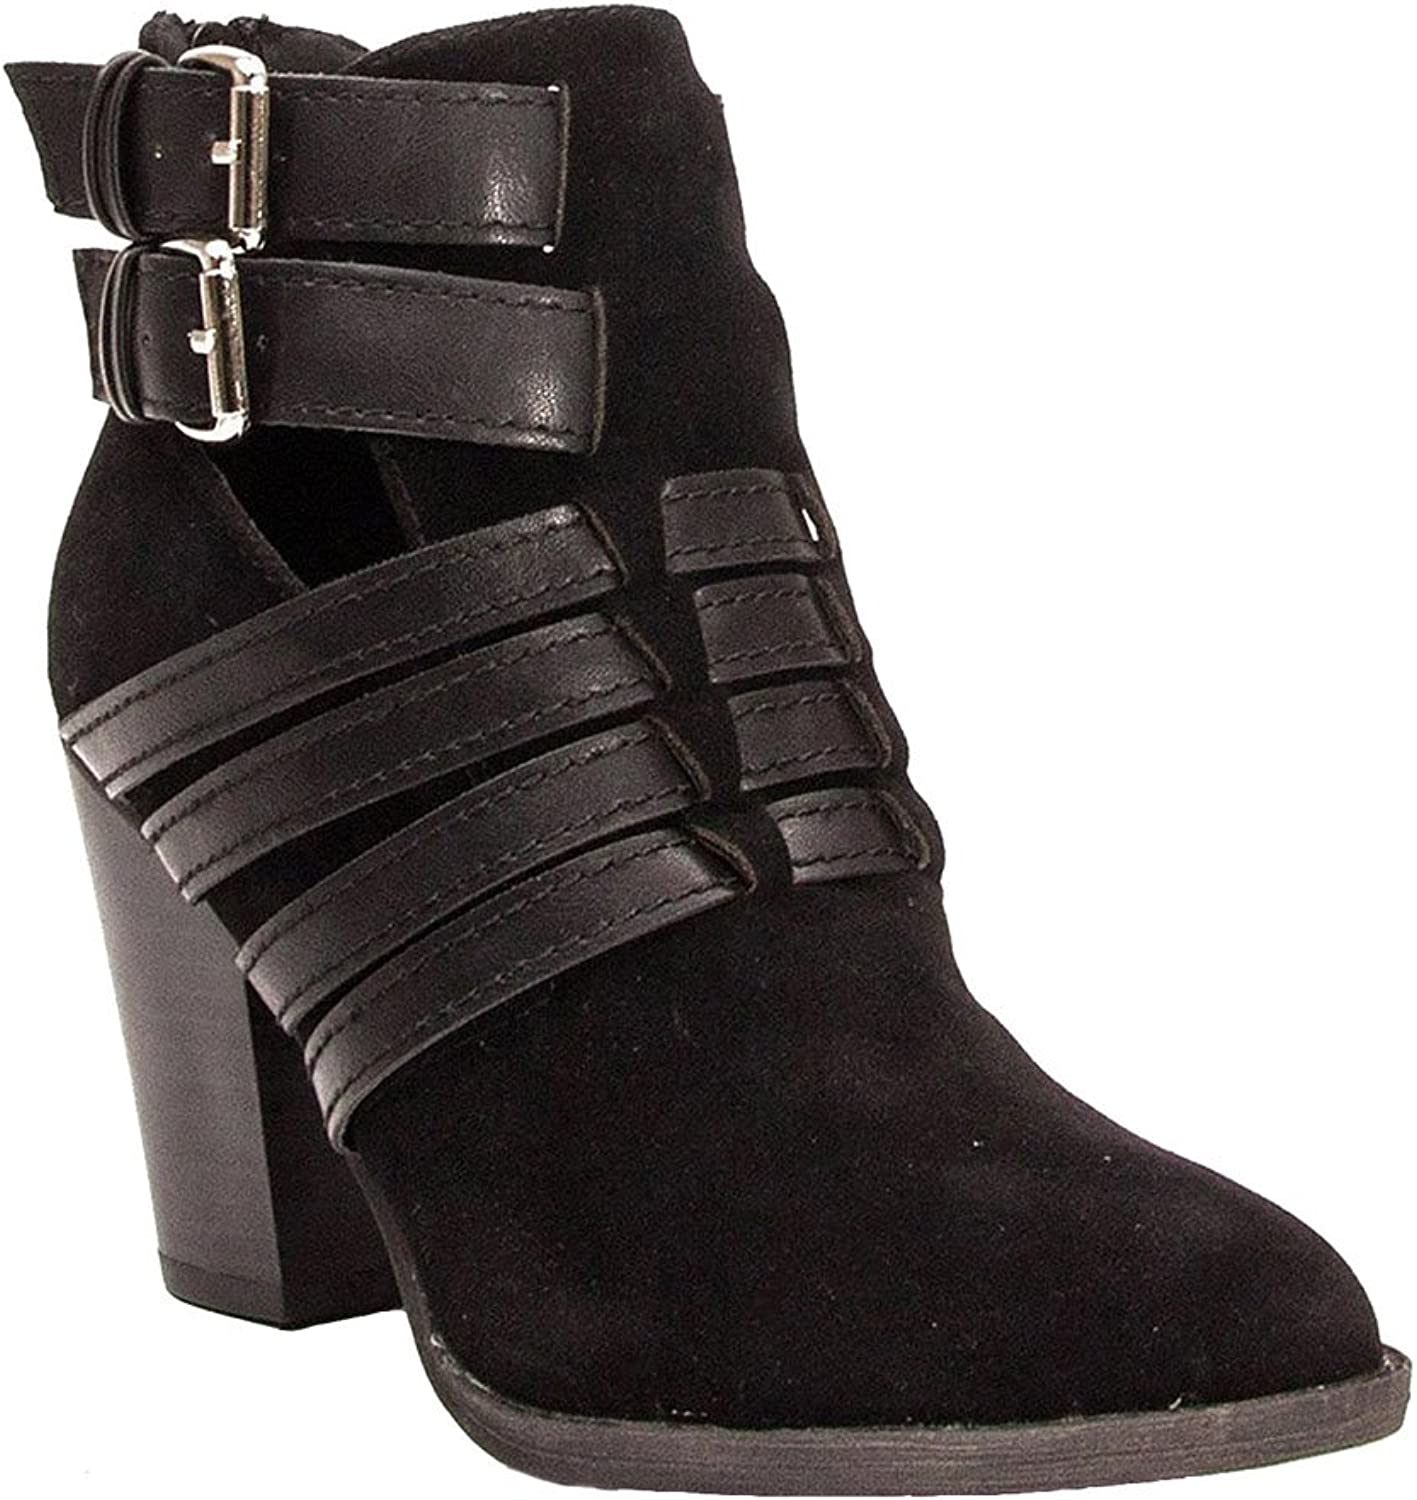 Breckelle's HEATHER-35W Women's Cut Out Back Zip Strappy Chunky Ankle Booties